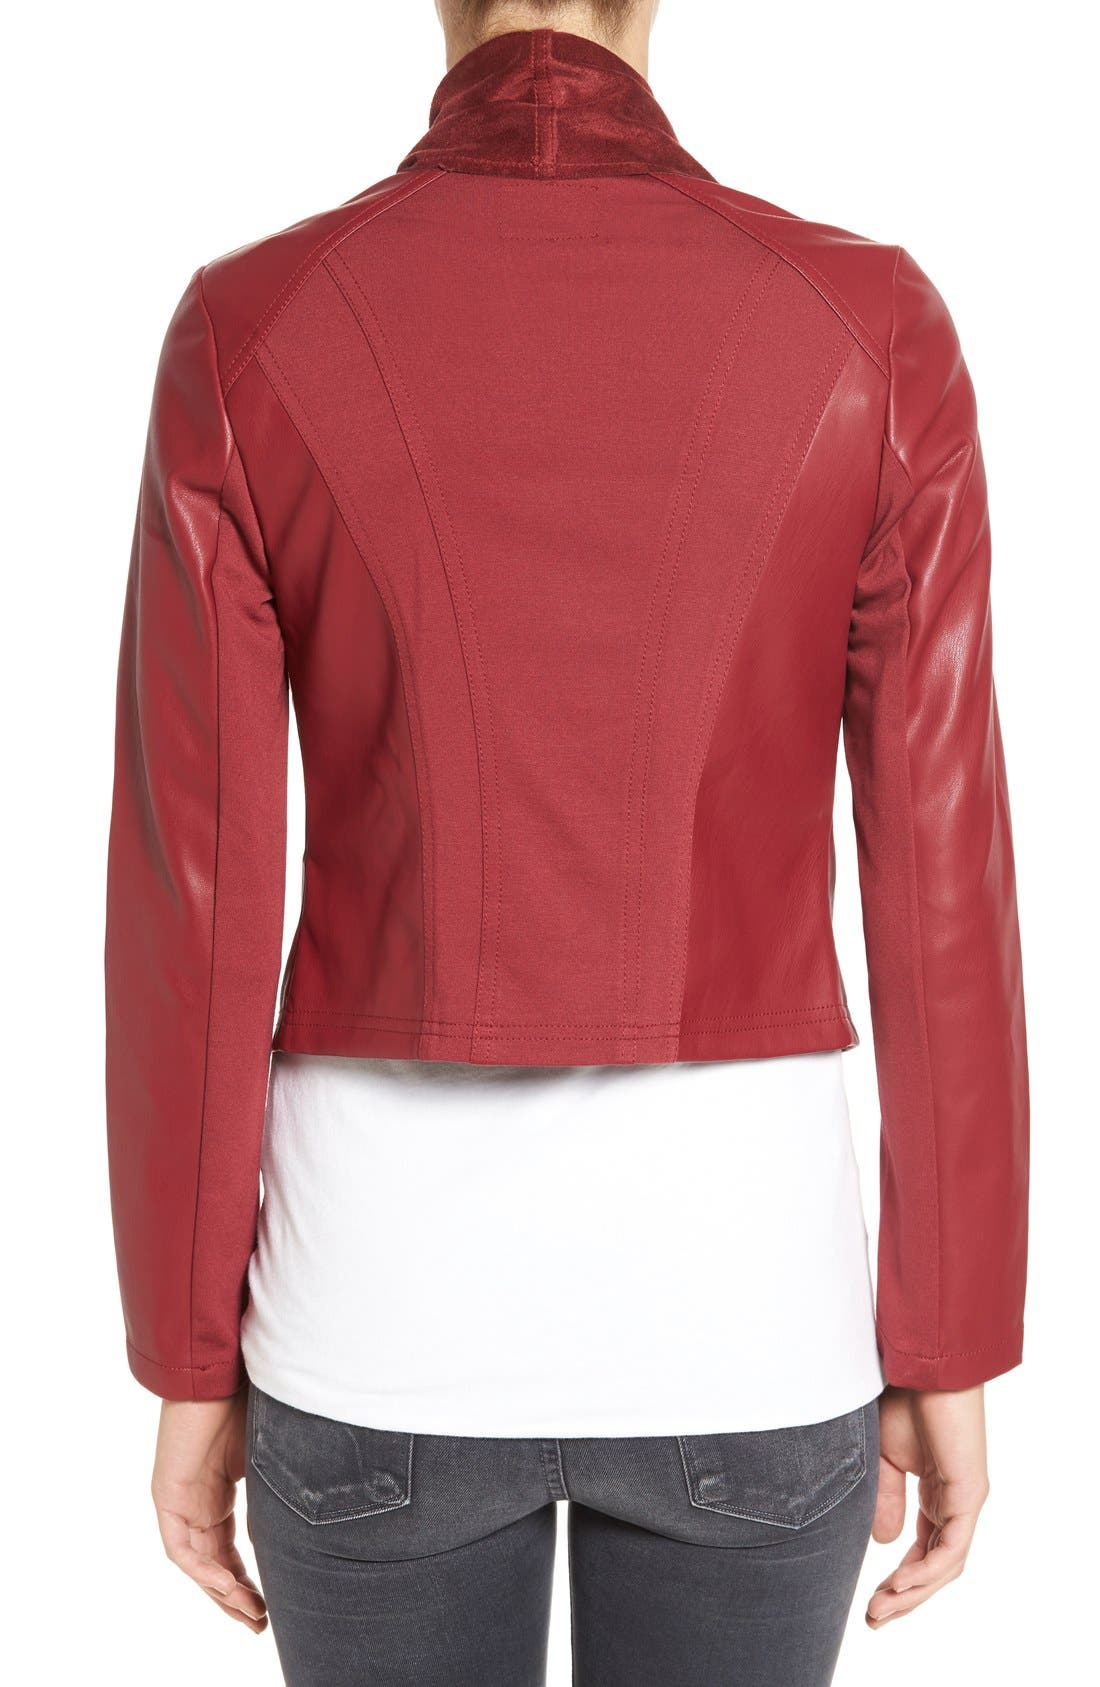 Alternate Image 2  - KUT from the Kloth 'Ana' Faux Leather Drape Front Jacket (Regular & Petite)